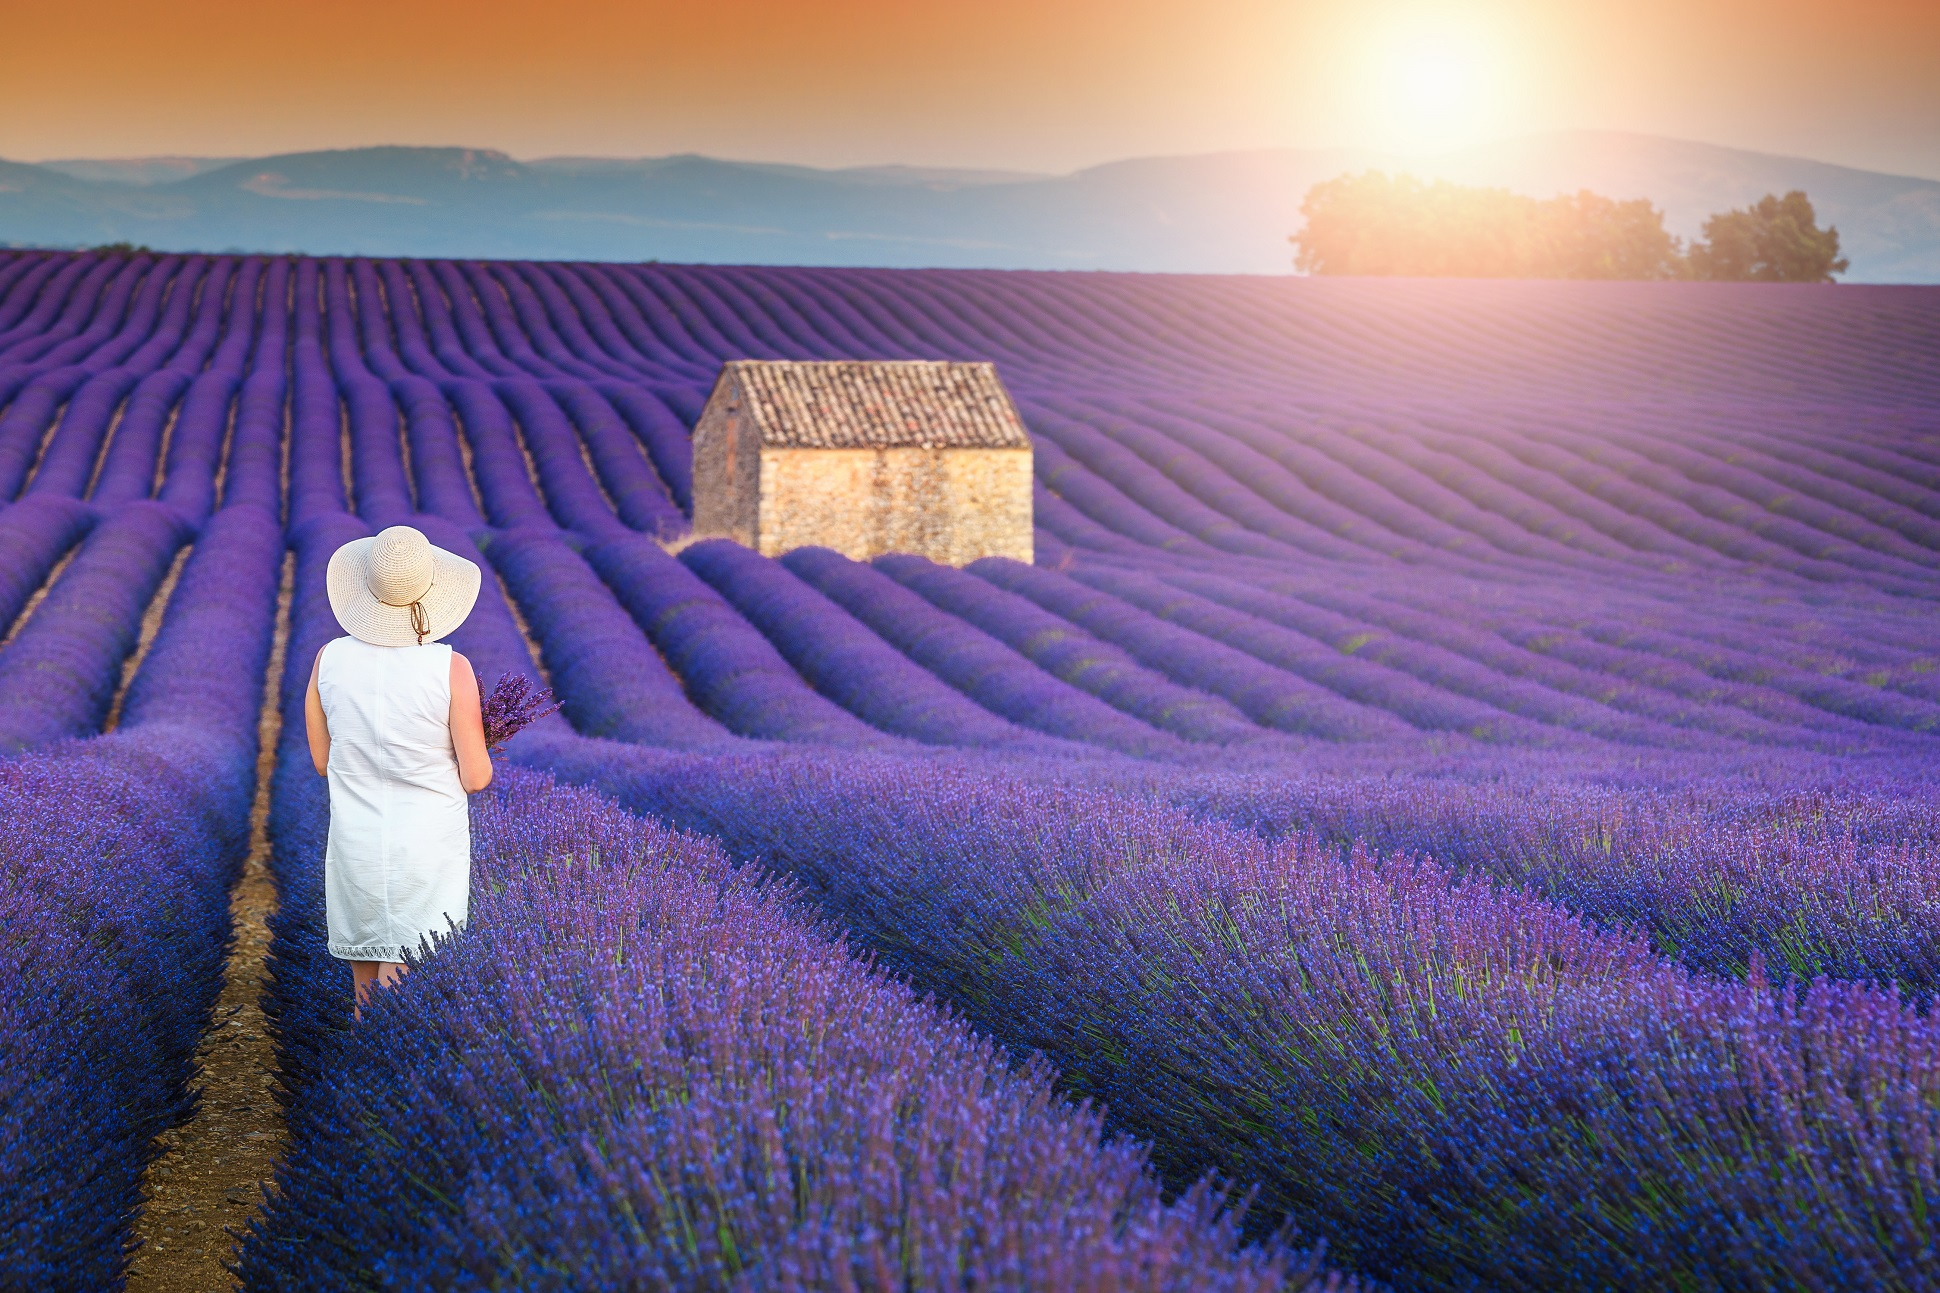 Aix Home Half Day Tour : Lavender Fields In Valensole - Bj5